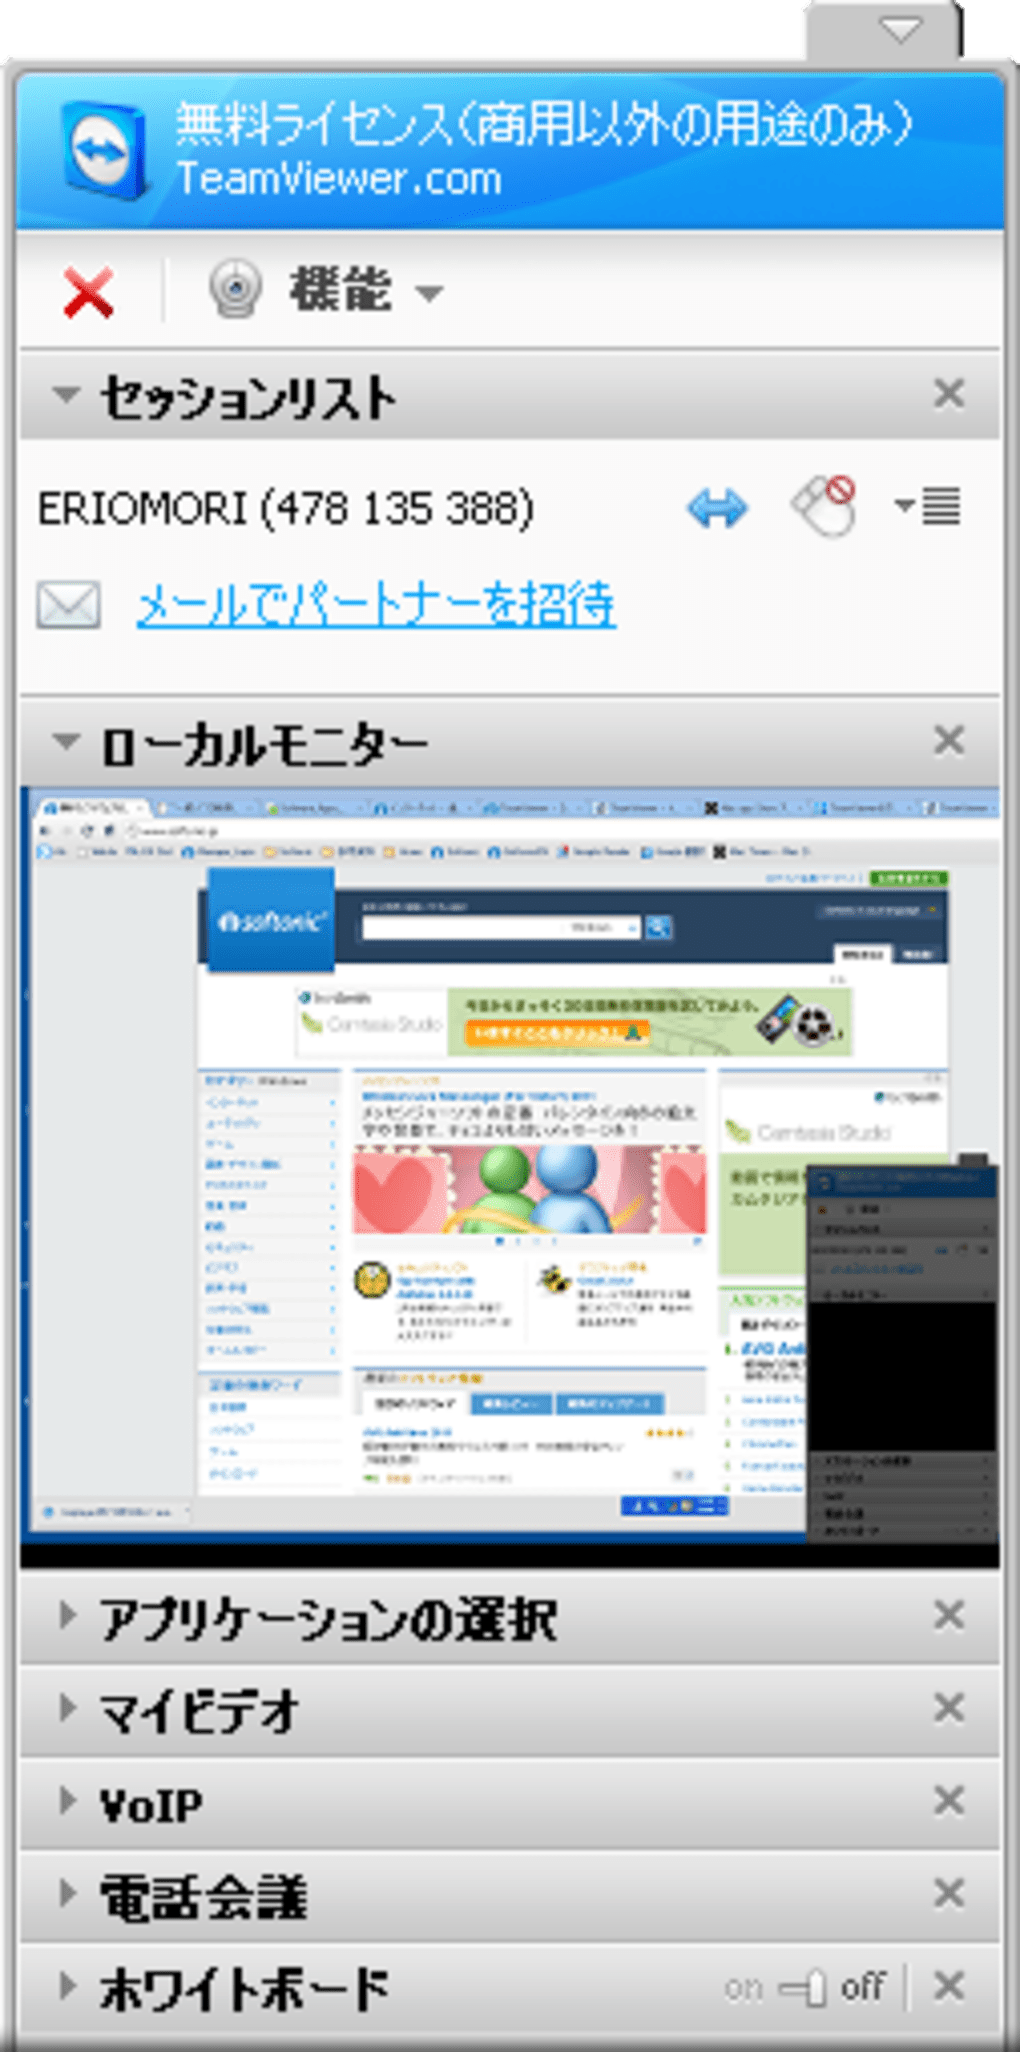 Download teamviewer 13 for all operating systems.